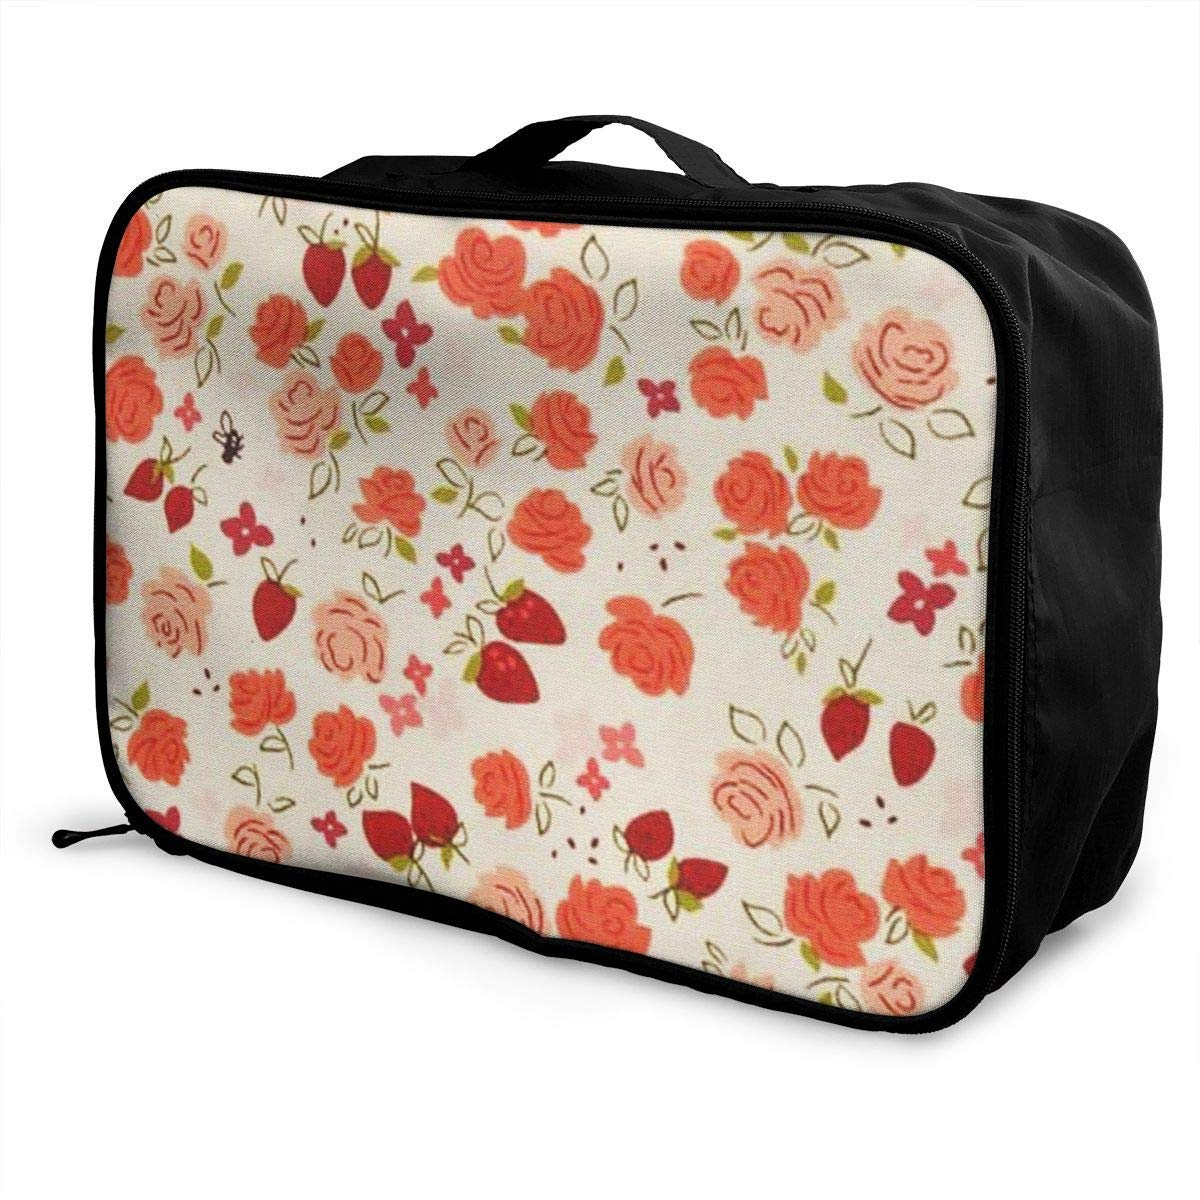 Portable Luggage Duffel Bag Rose Pattern Travel Bags Carry-on In Trolley Handle